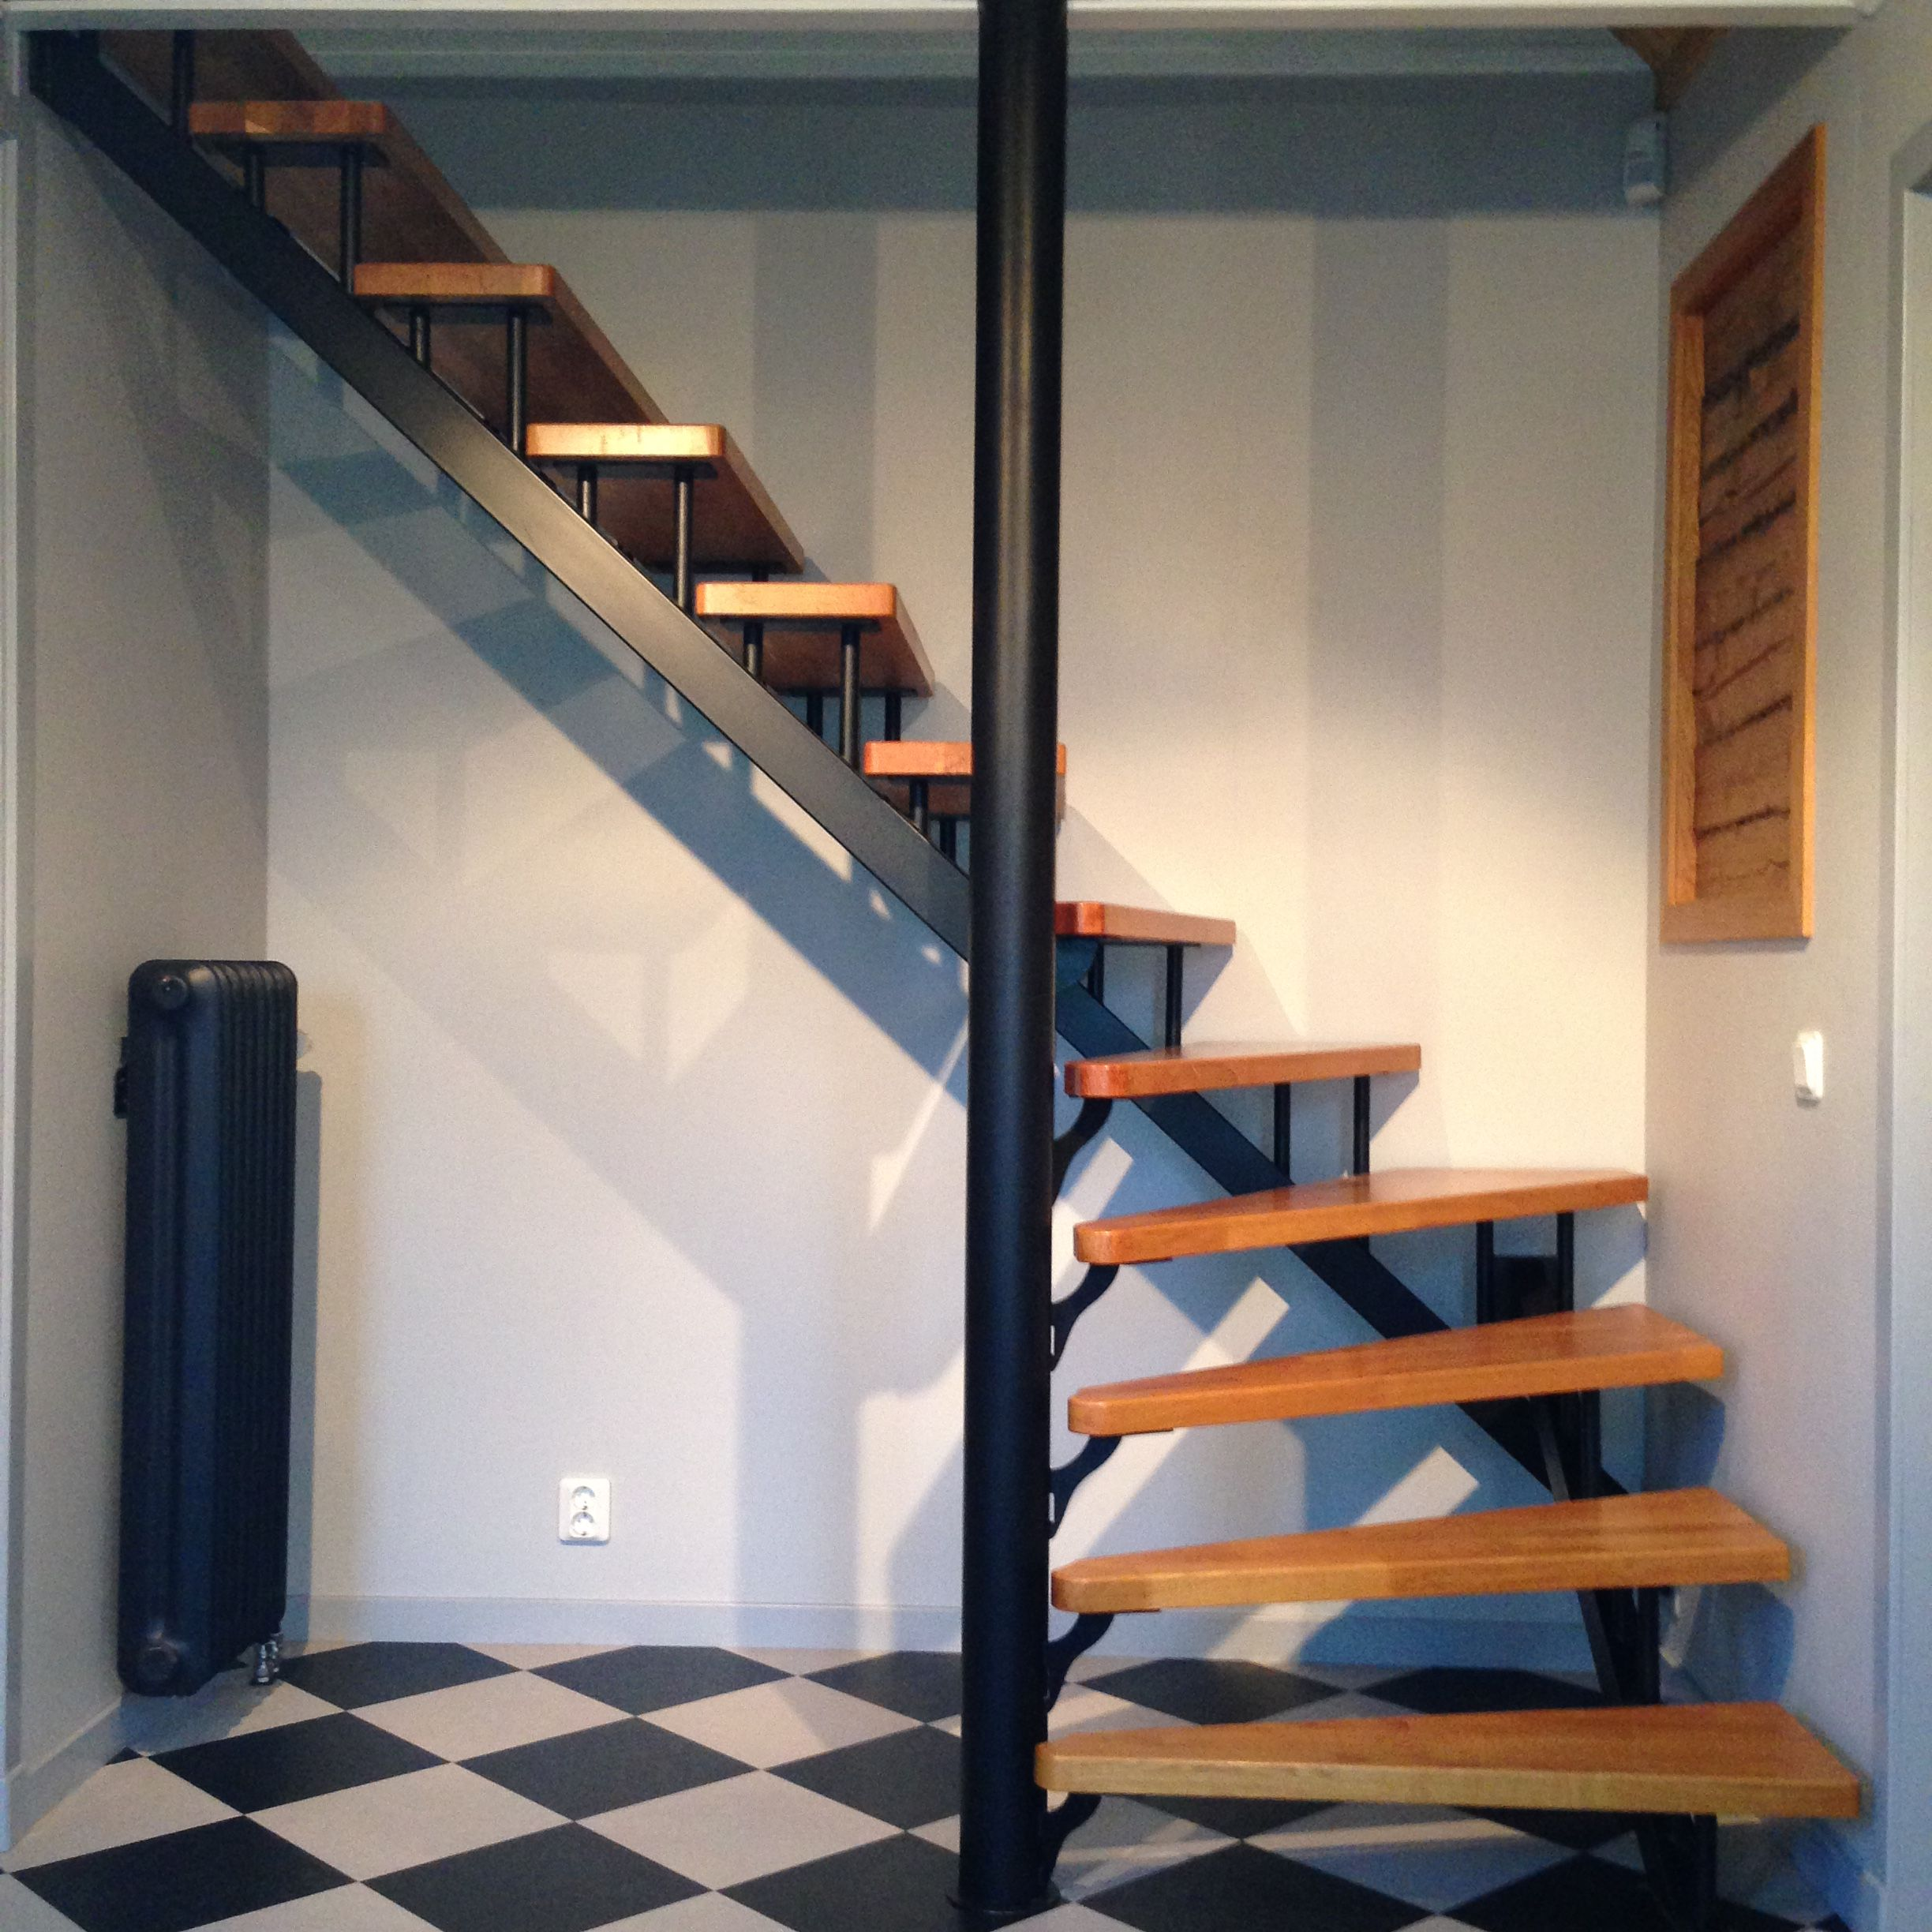 Oak Arbor Grille Pa: Stair I Made, Painted Stainless And Oak Steps. Also Opened